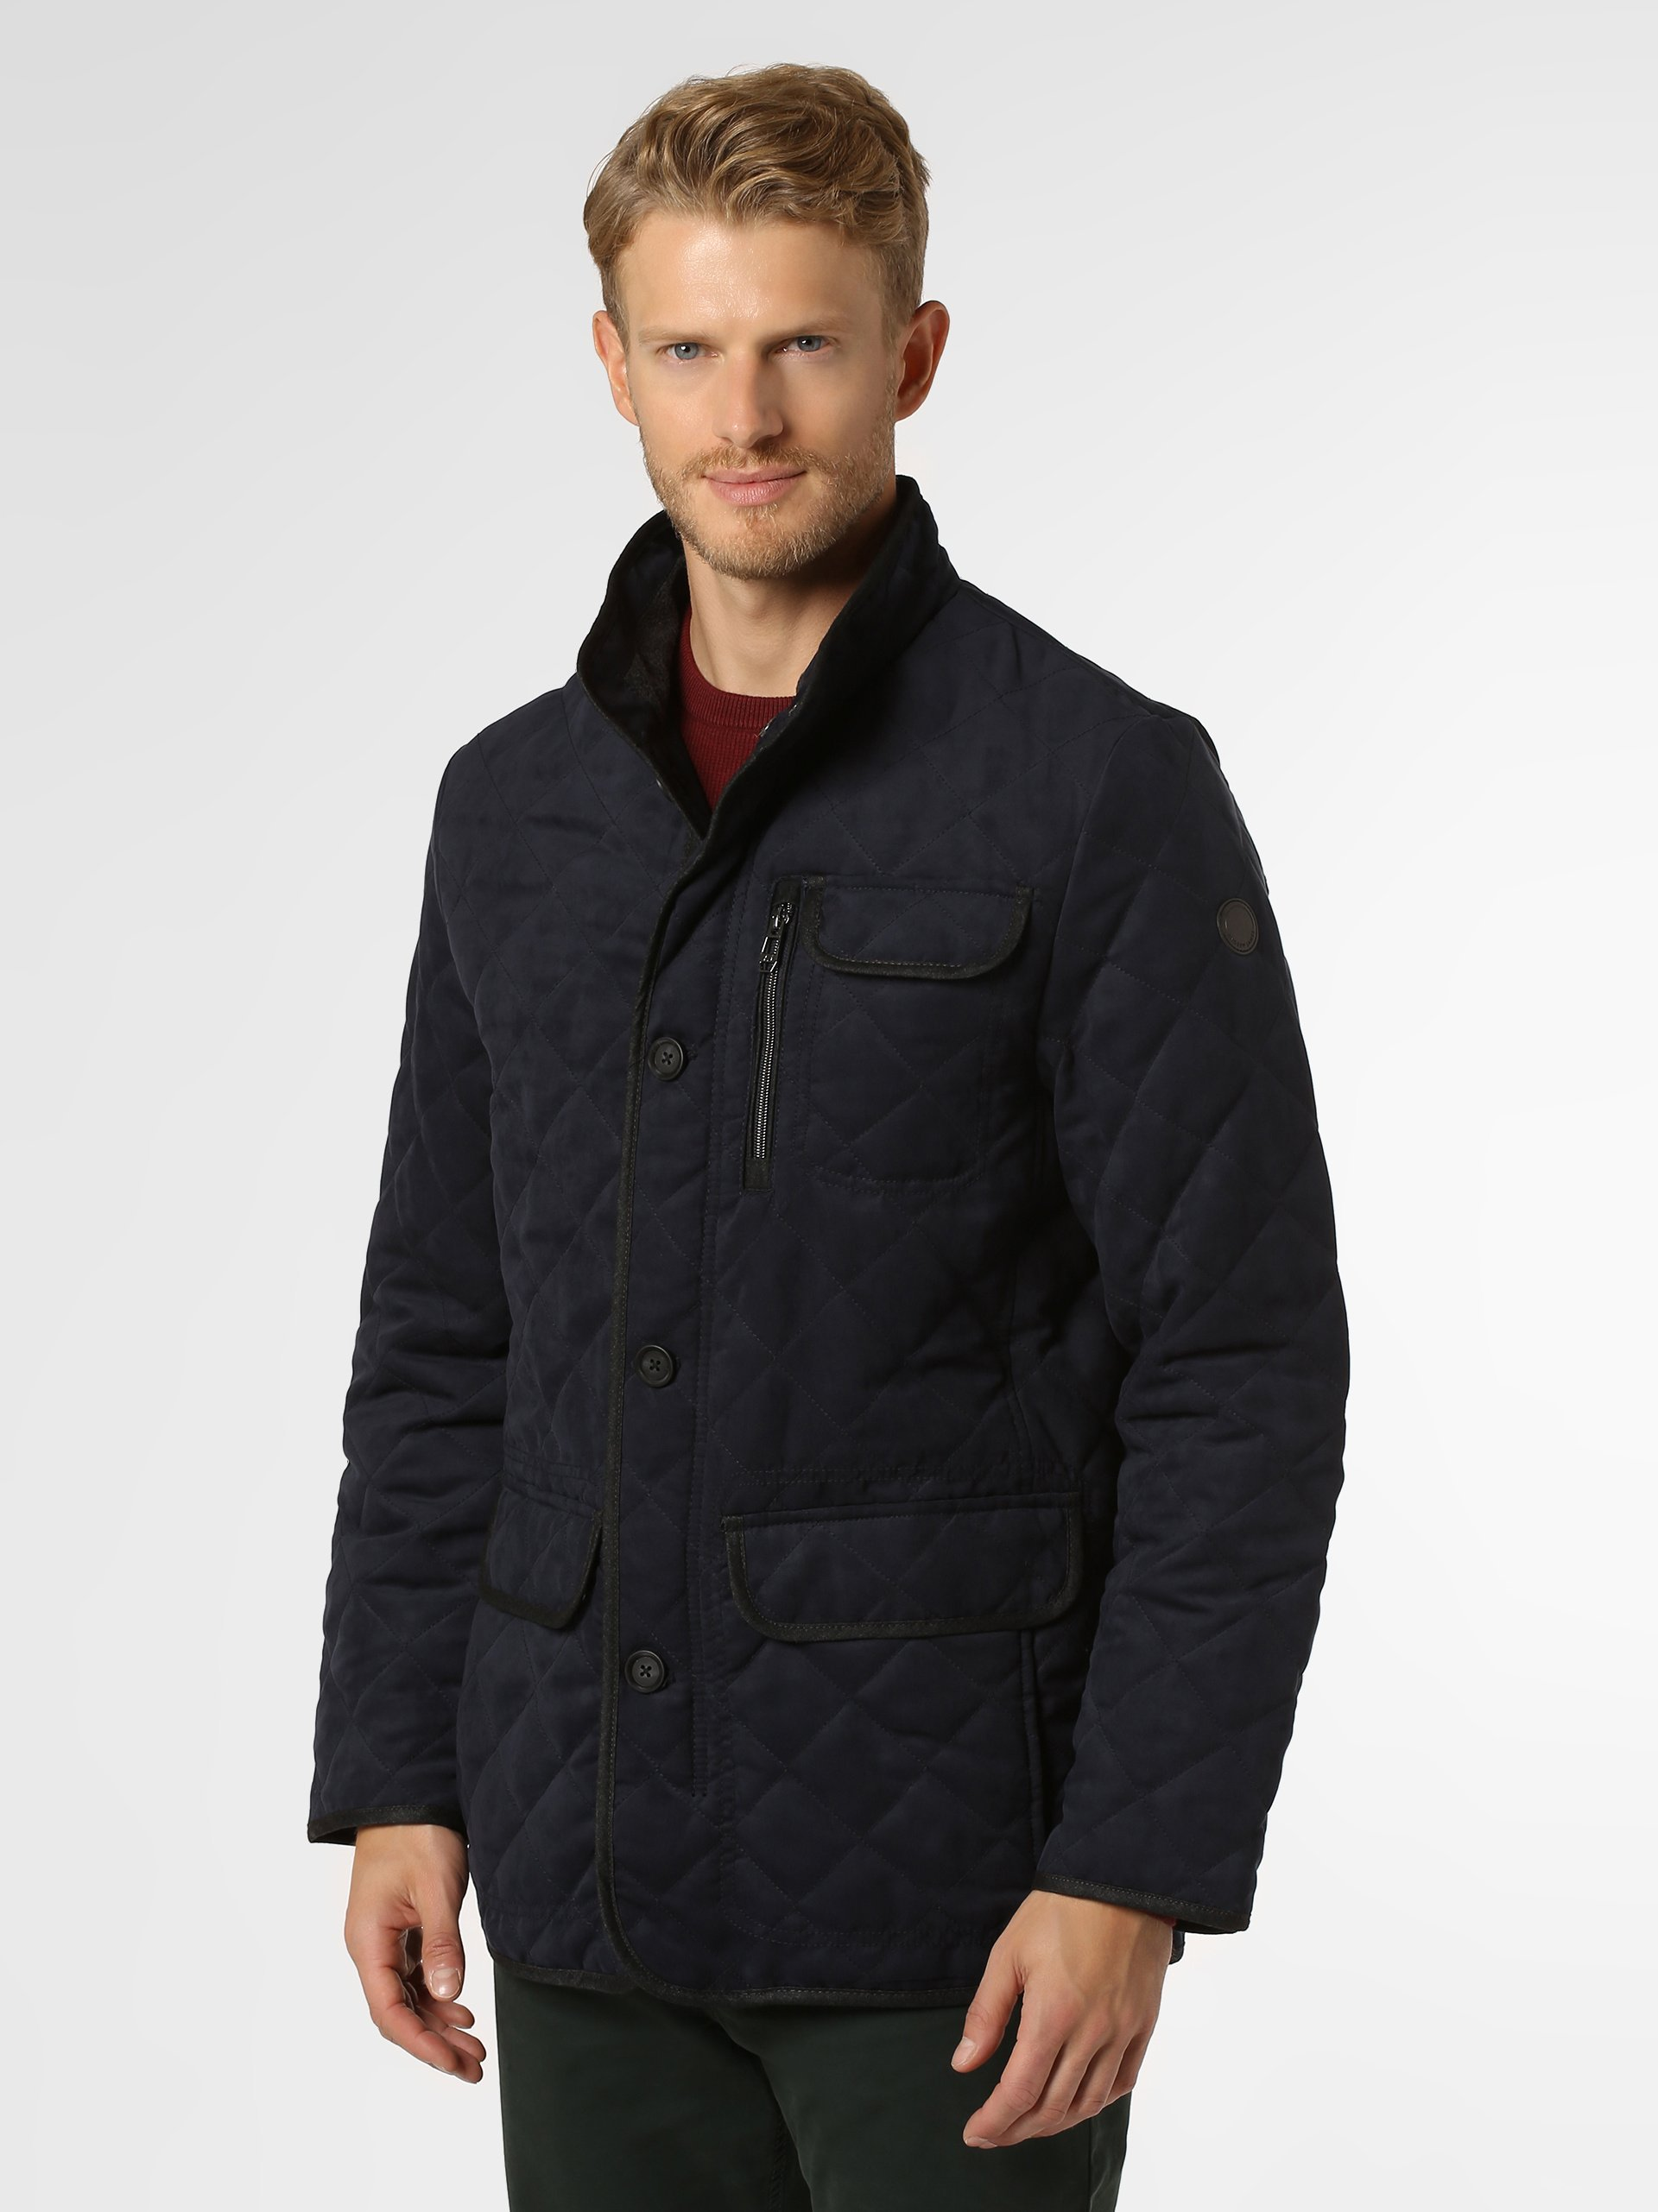 James Herren Steppjacke